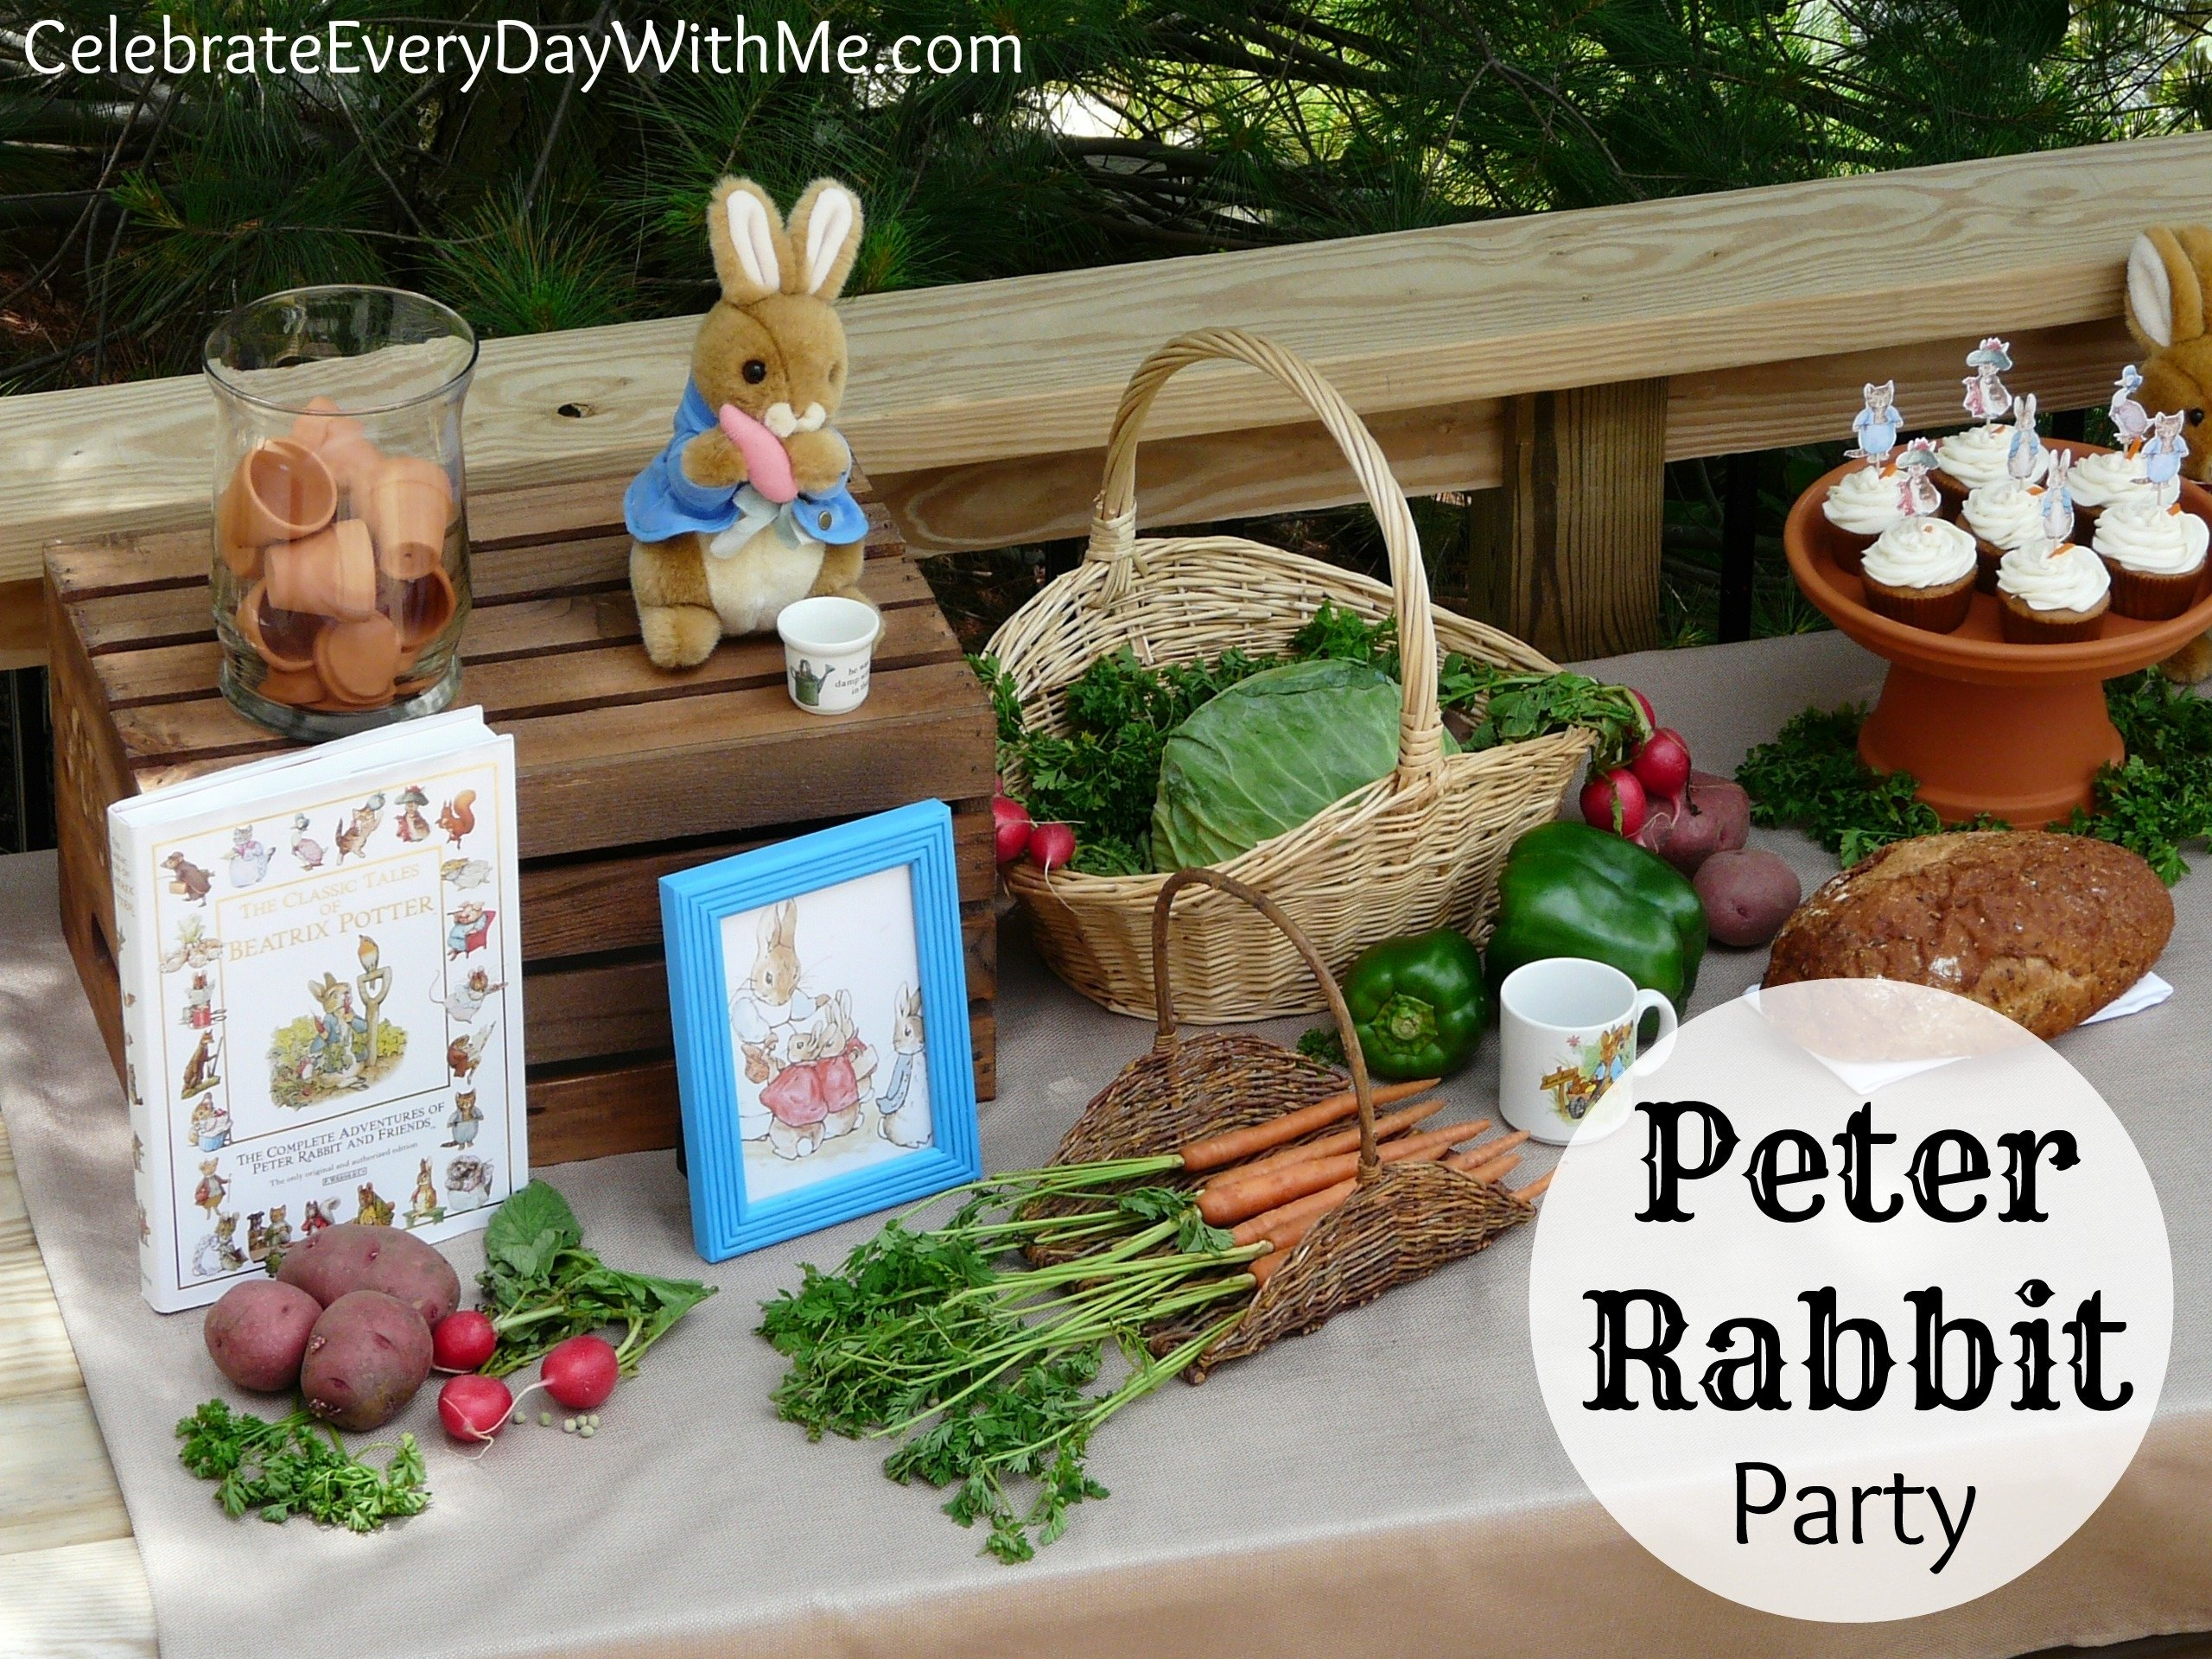 10 Perfect Peter Rabbit Baby Shower Ideas a peter rabbit party part 2 celebrate every day with me 2020